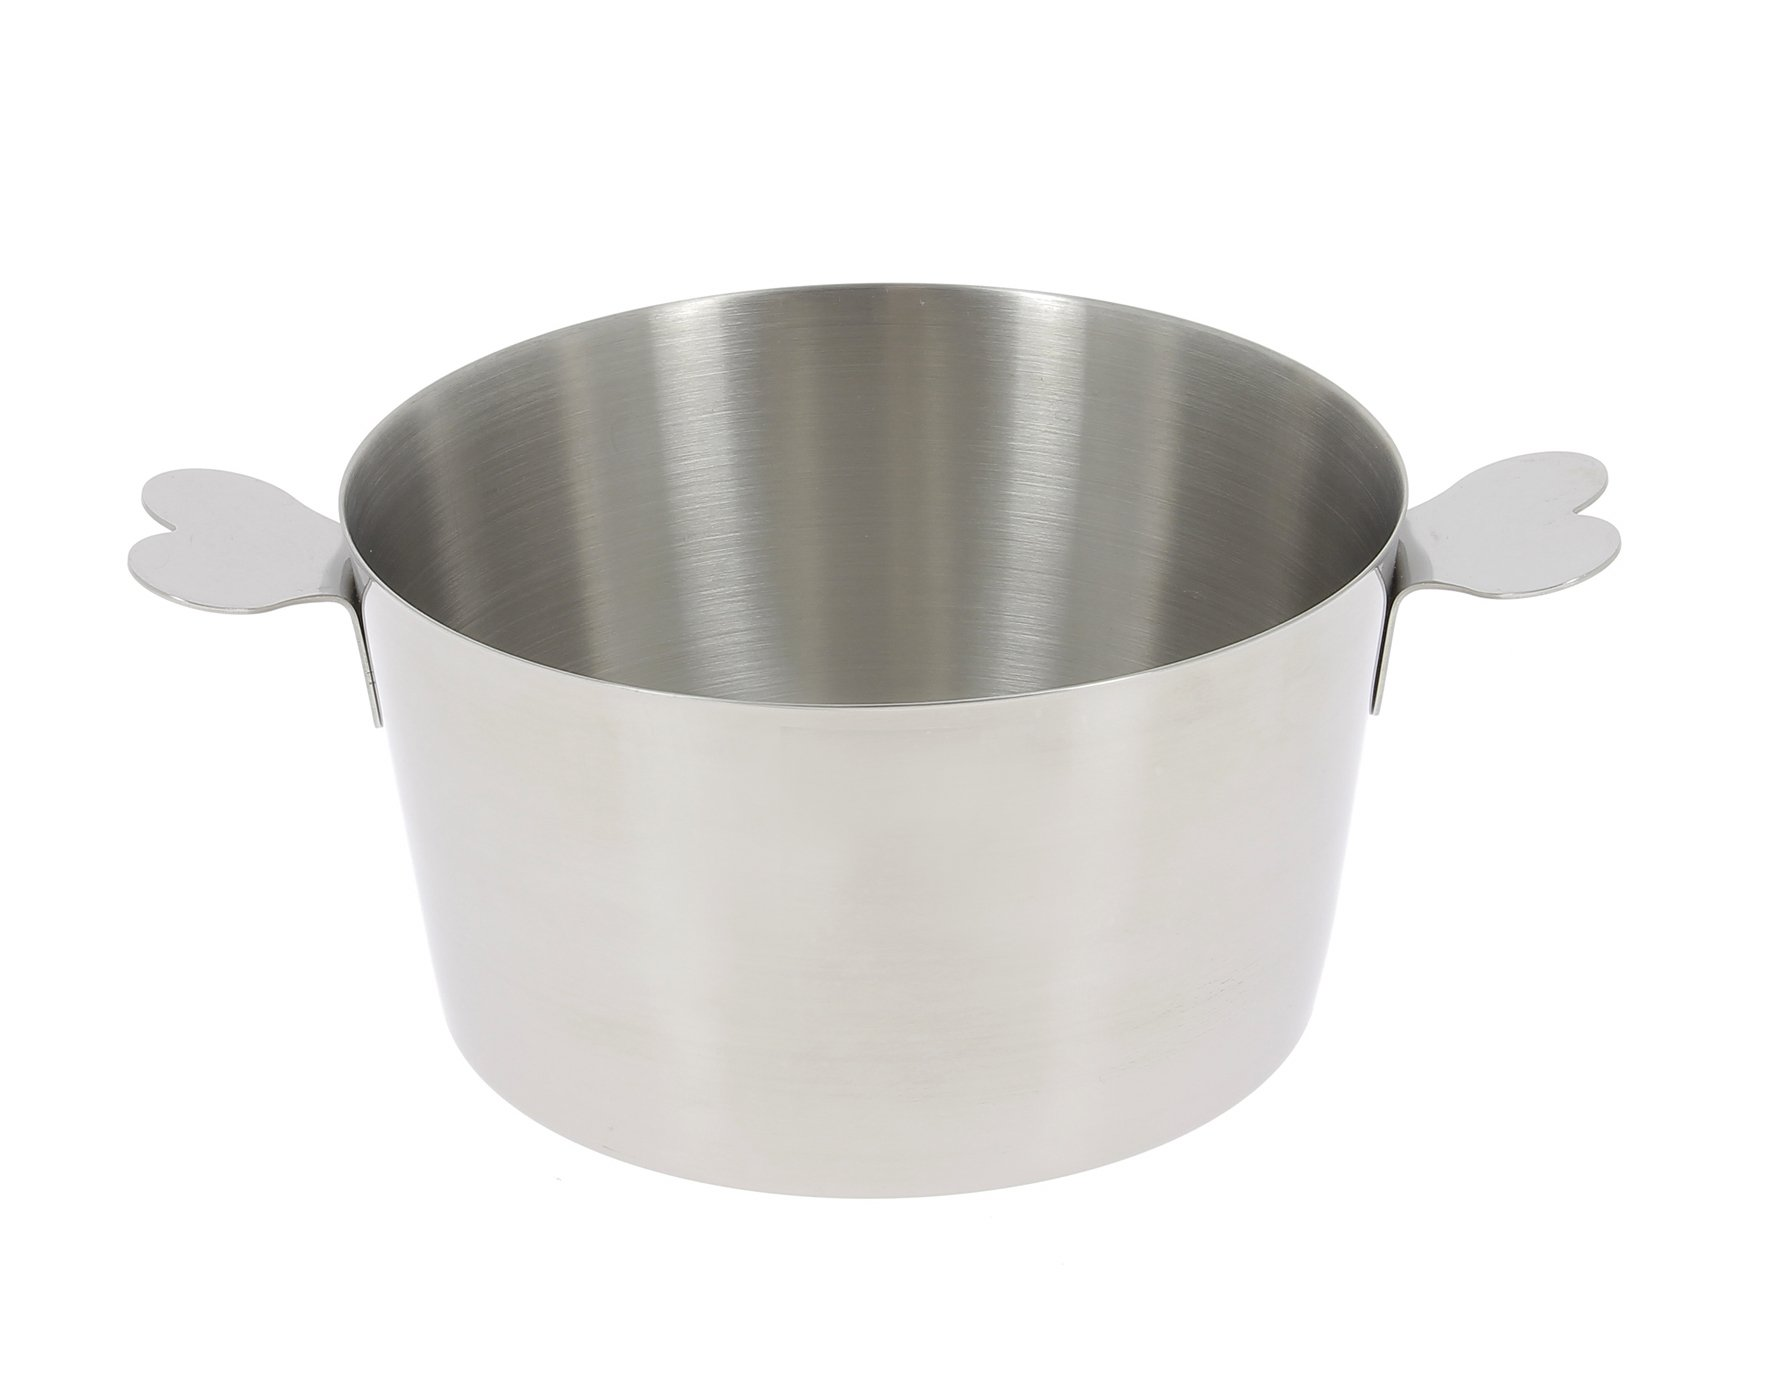 De Buyer Professional Pro Collection Stainless Steel 22 x 16.4 cm Charlotte Mold with Handles 3125.16